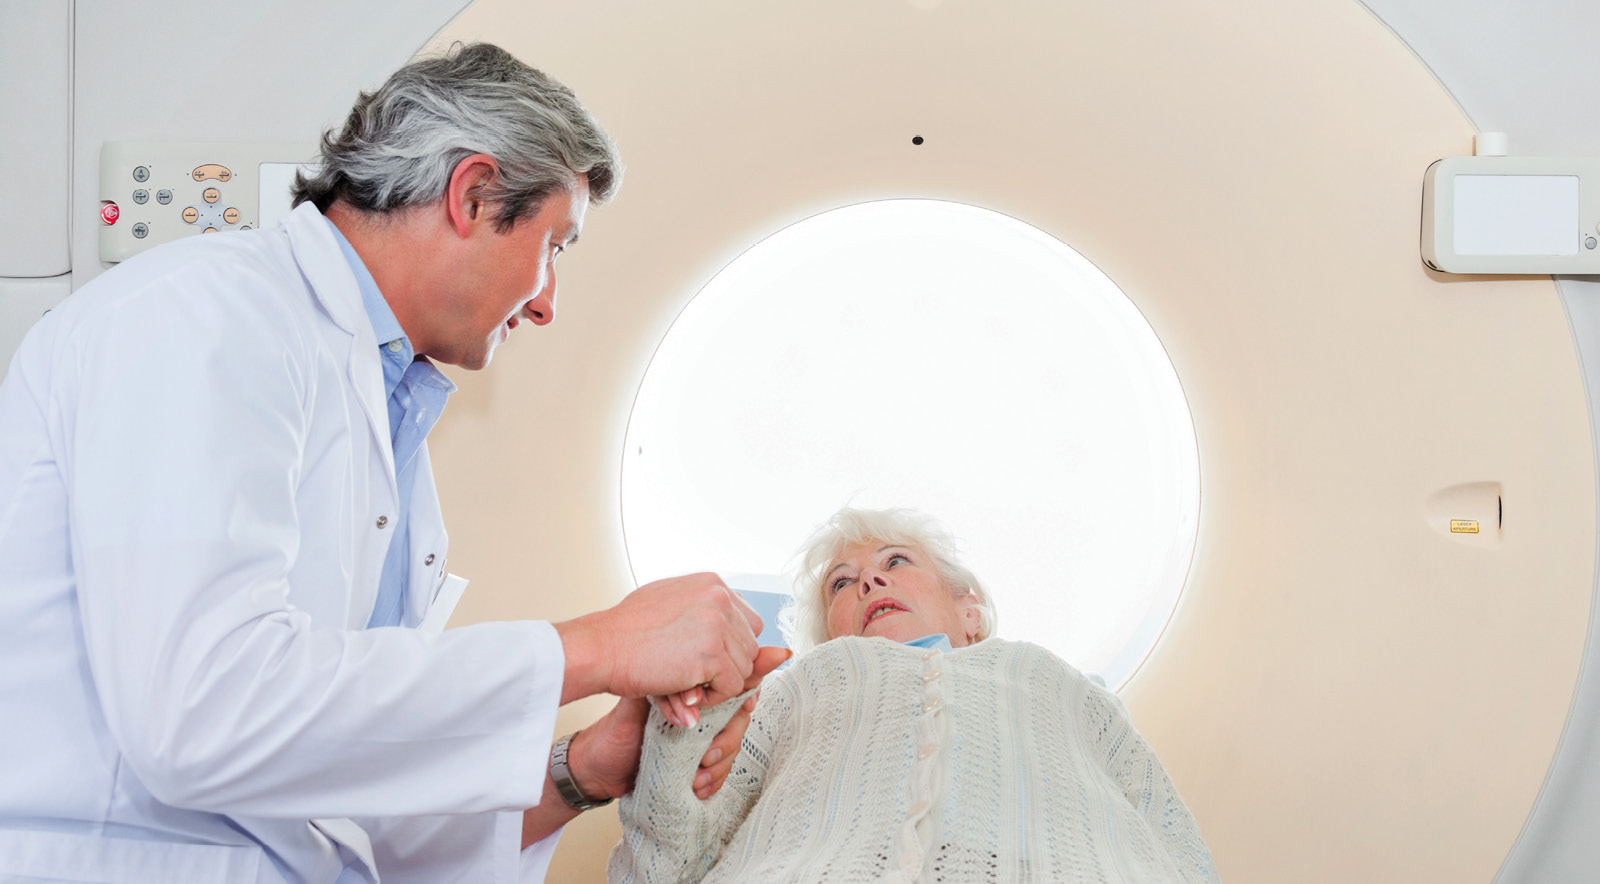 Radiologists are facing unique challenges in imaging the rapidly growing population of elderly patients